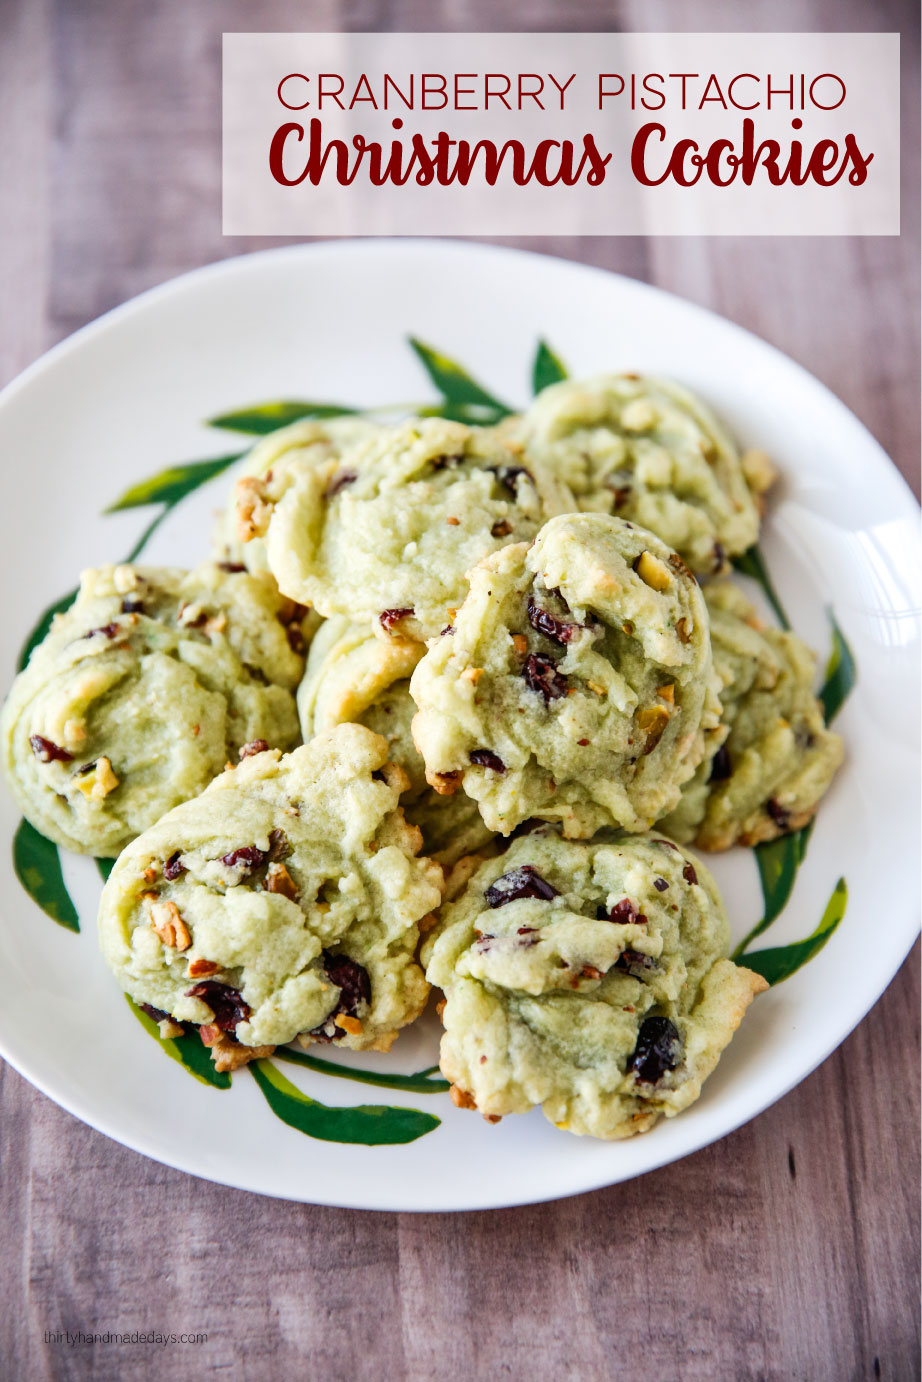 Holidays: Amazing Christmas Cookies that are super easy to make.  We love these Cranberry Pistachio Cookies so much!